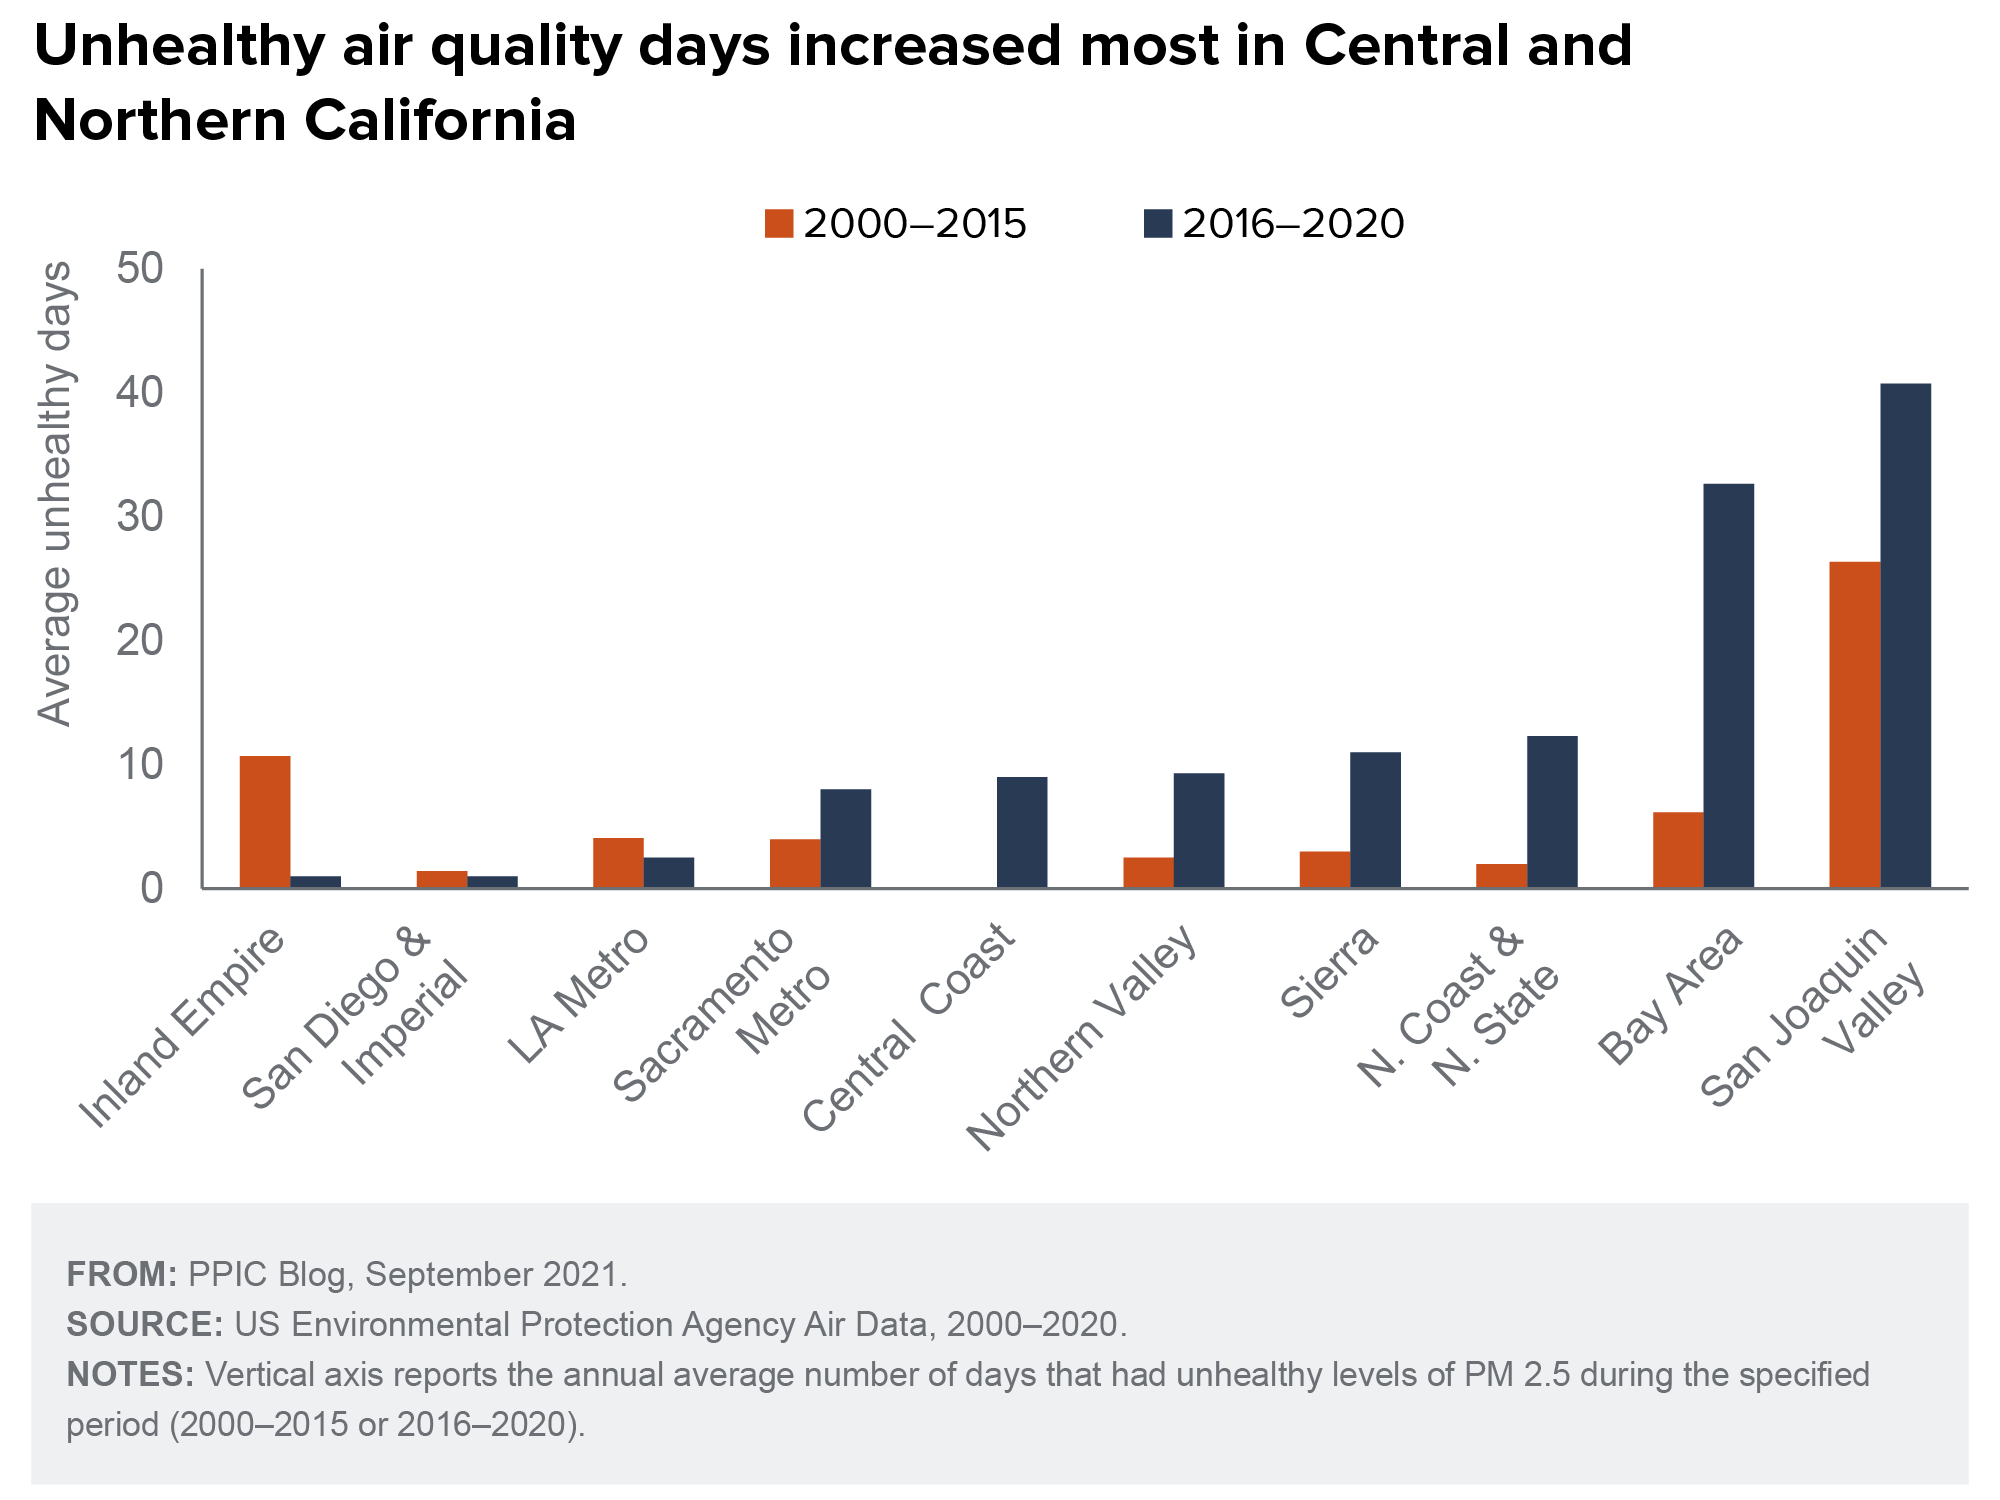 figure - Unhealthy air quality days increased in Central and Northern California